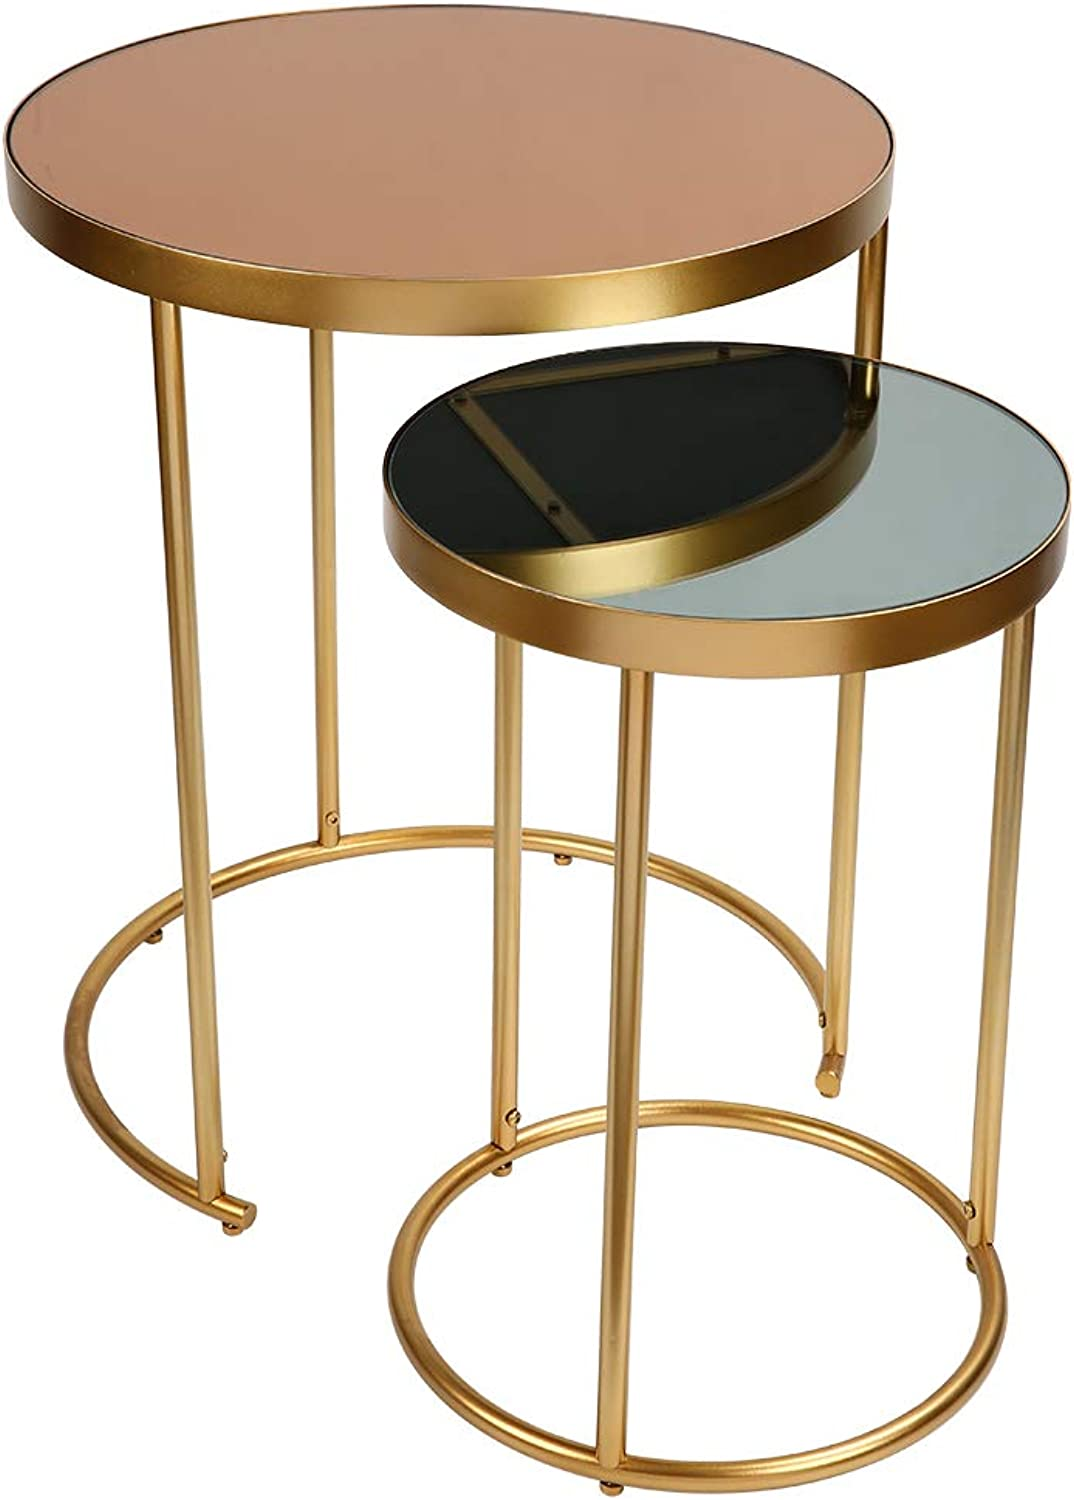 2 Piece Side Tables Set, Round Modern Nesting Side Accent Tables with color Glass Top and gold Base